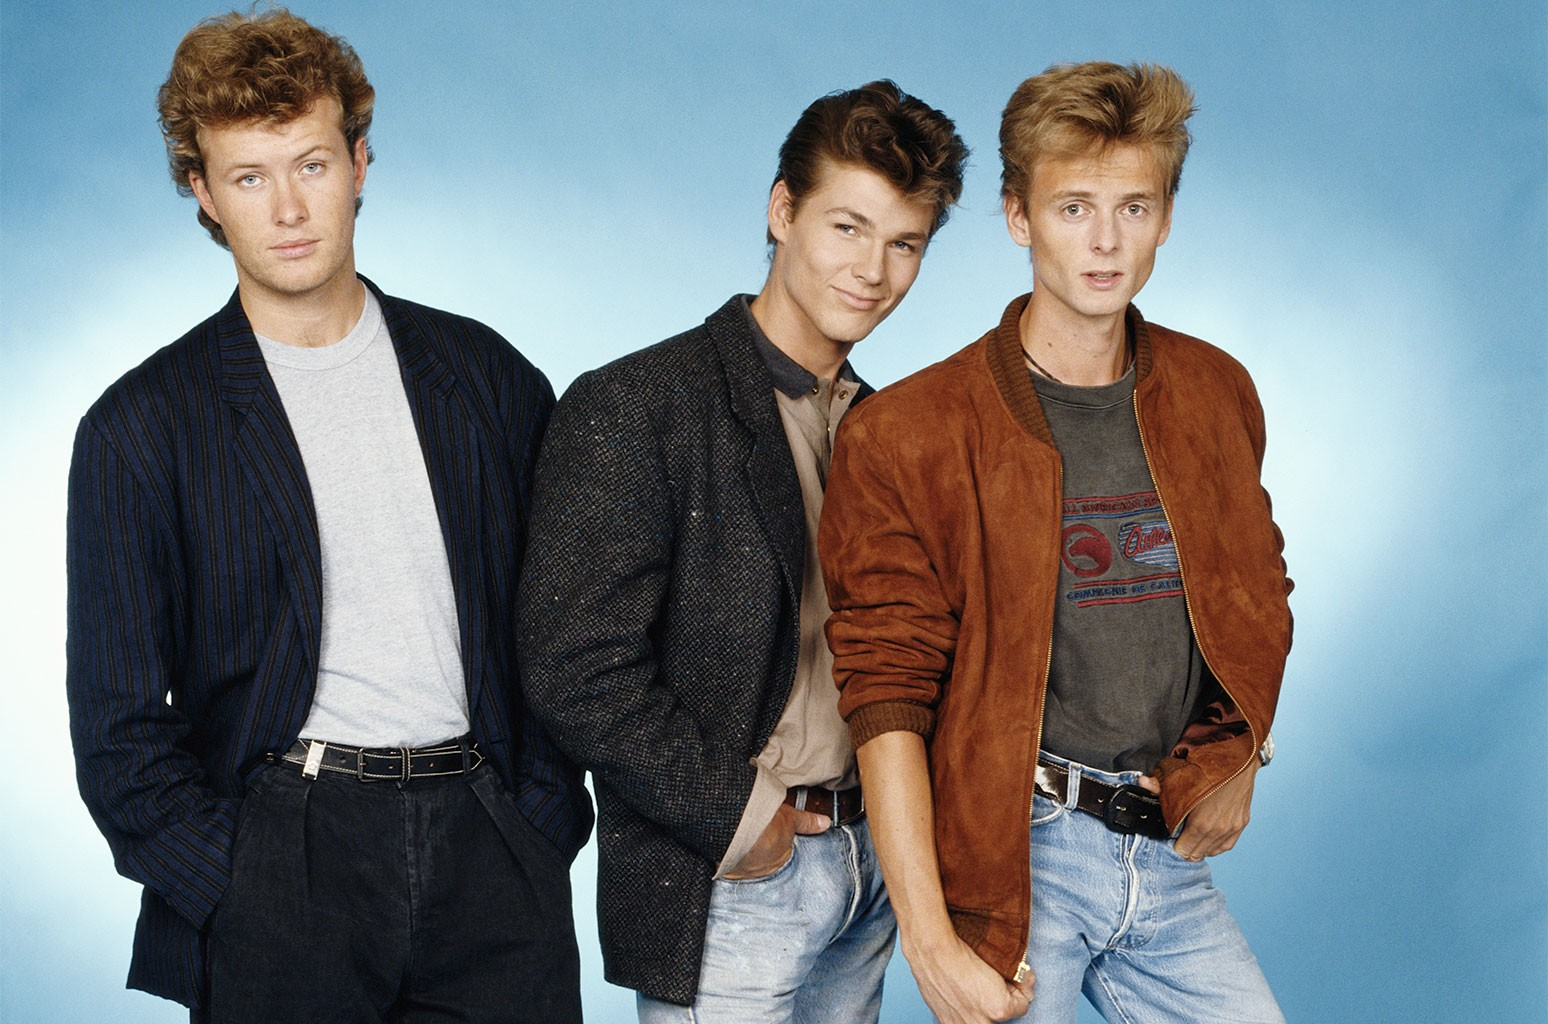 A-ha photographed in 1985.